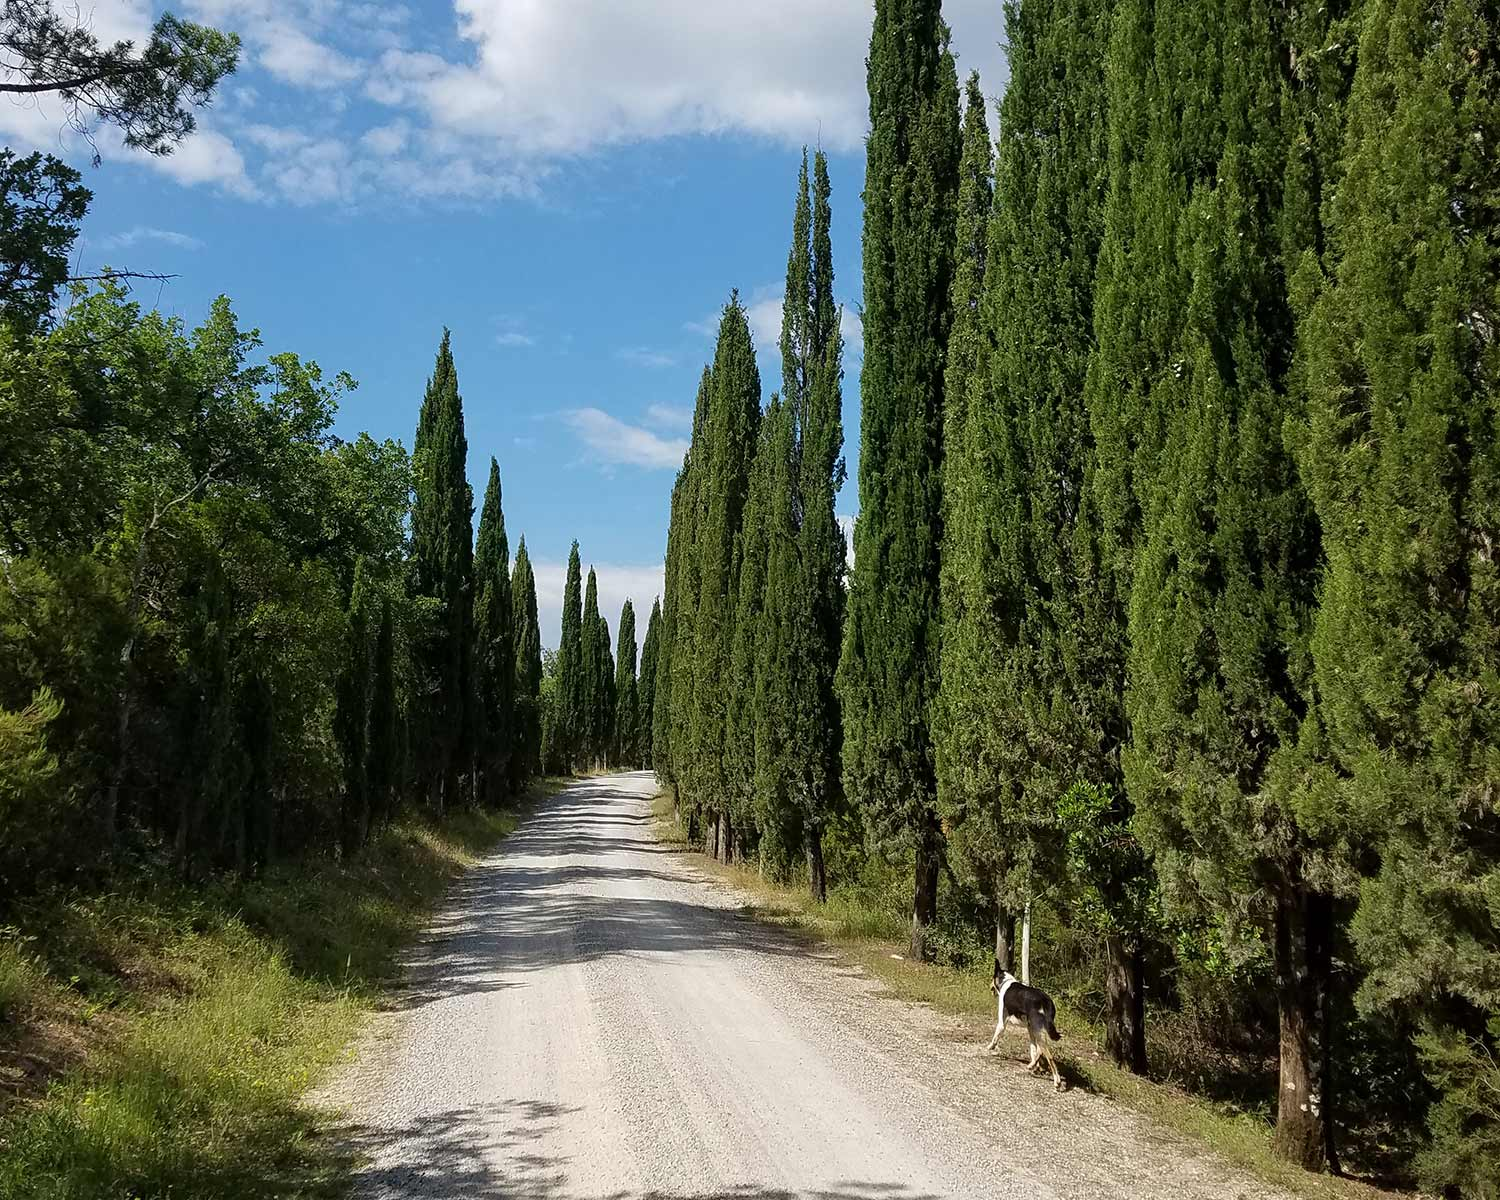 Tuscany Road in Chianti Hills near Siena